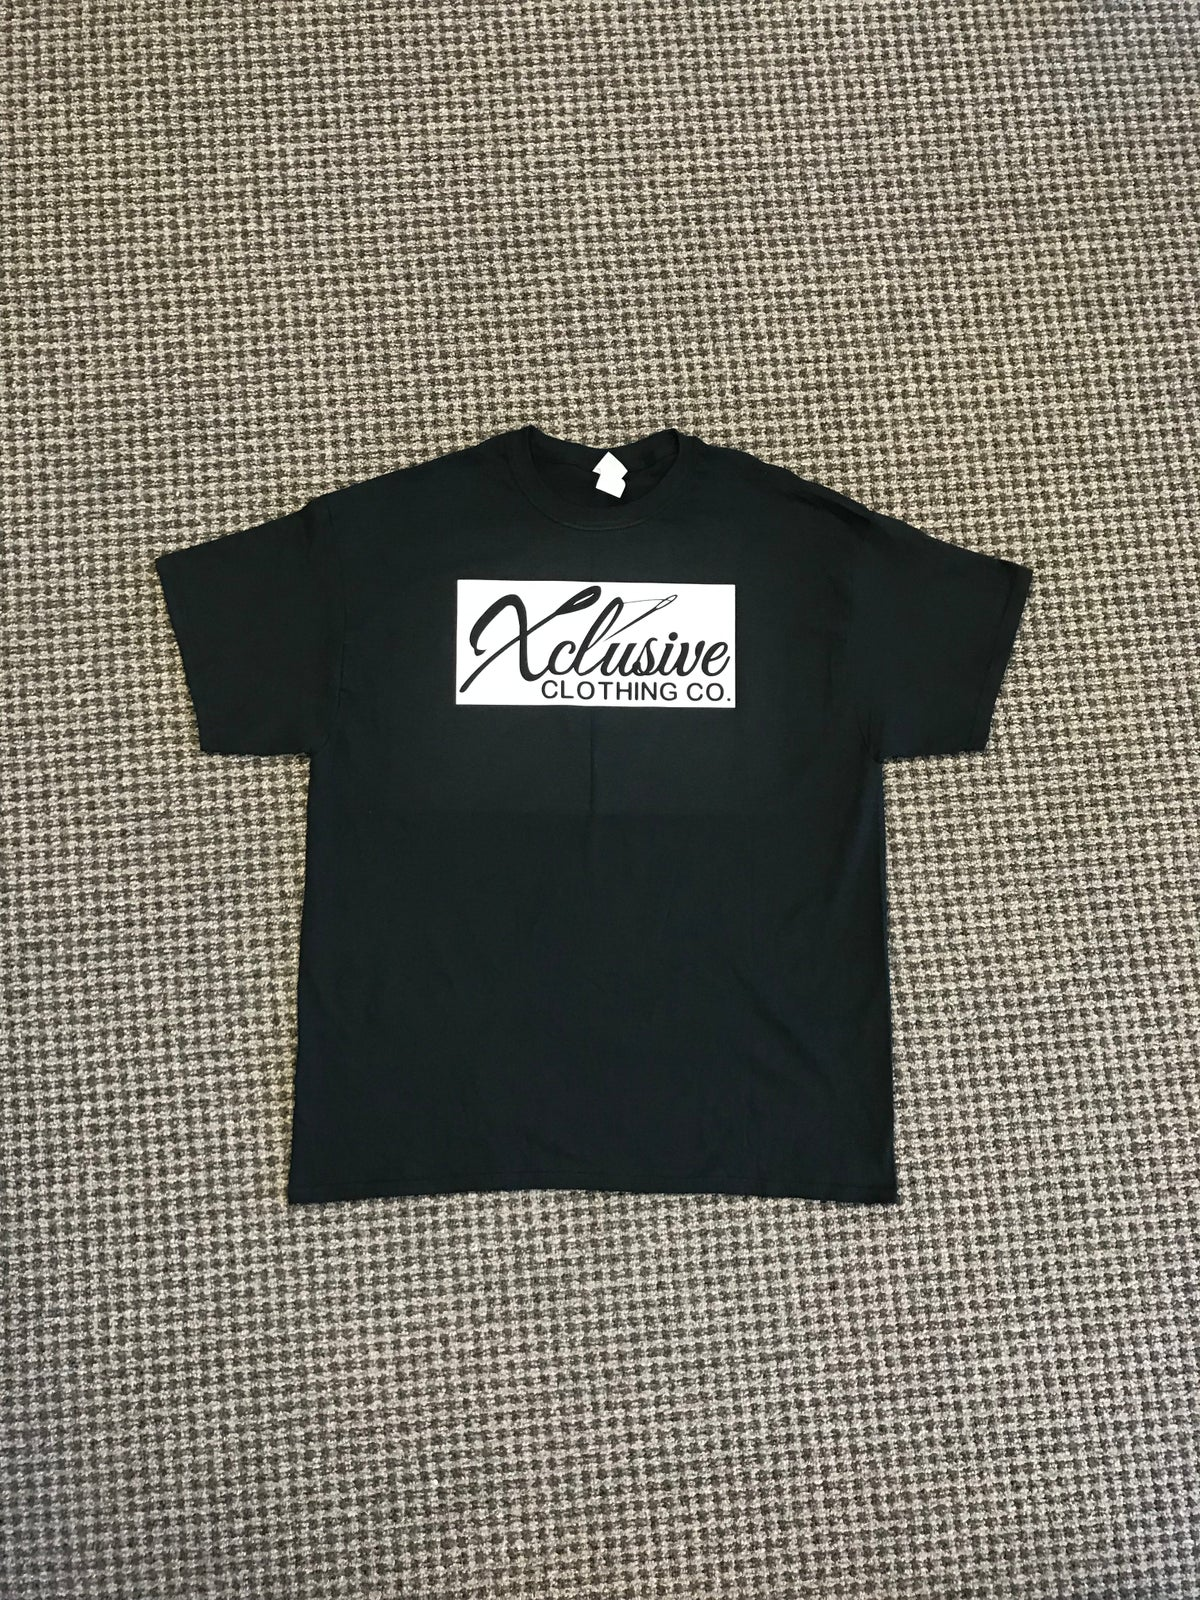 Image of Black and white Tee